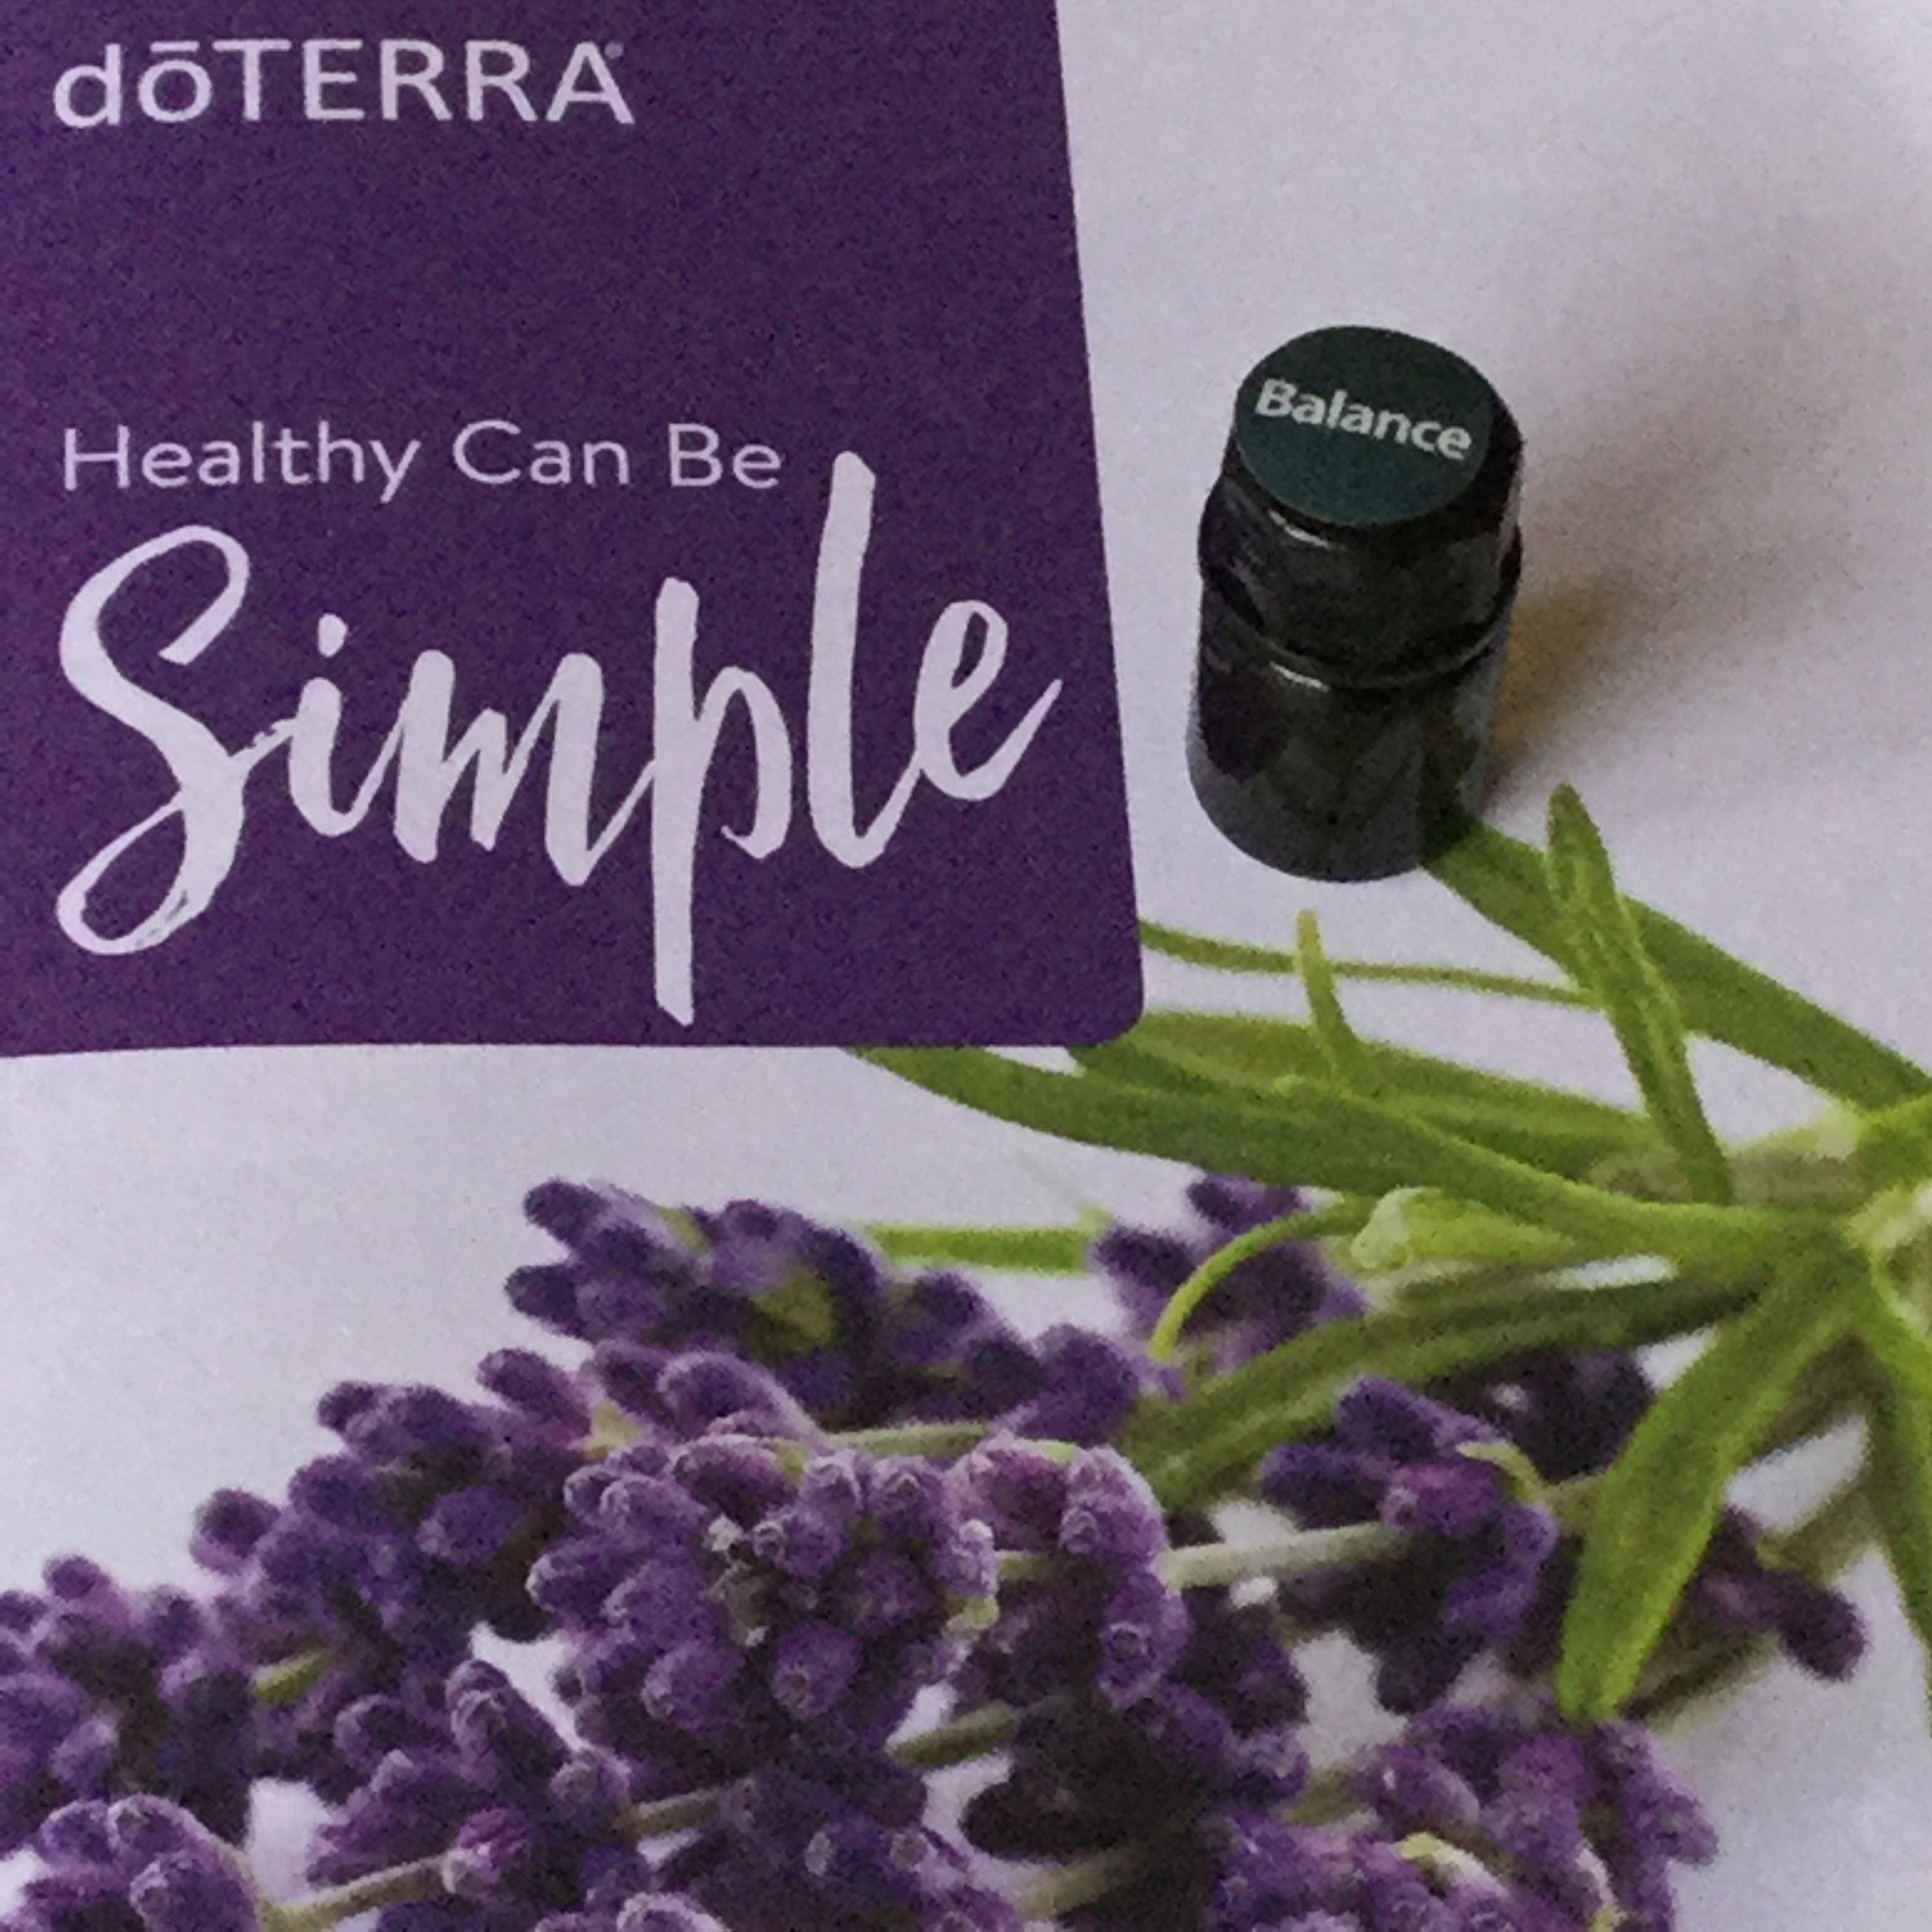 Oil: 2ml Balance dōTerra Essential Oil